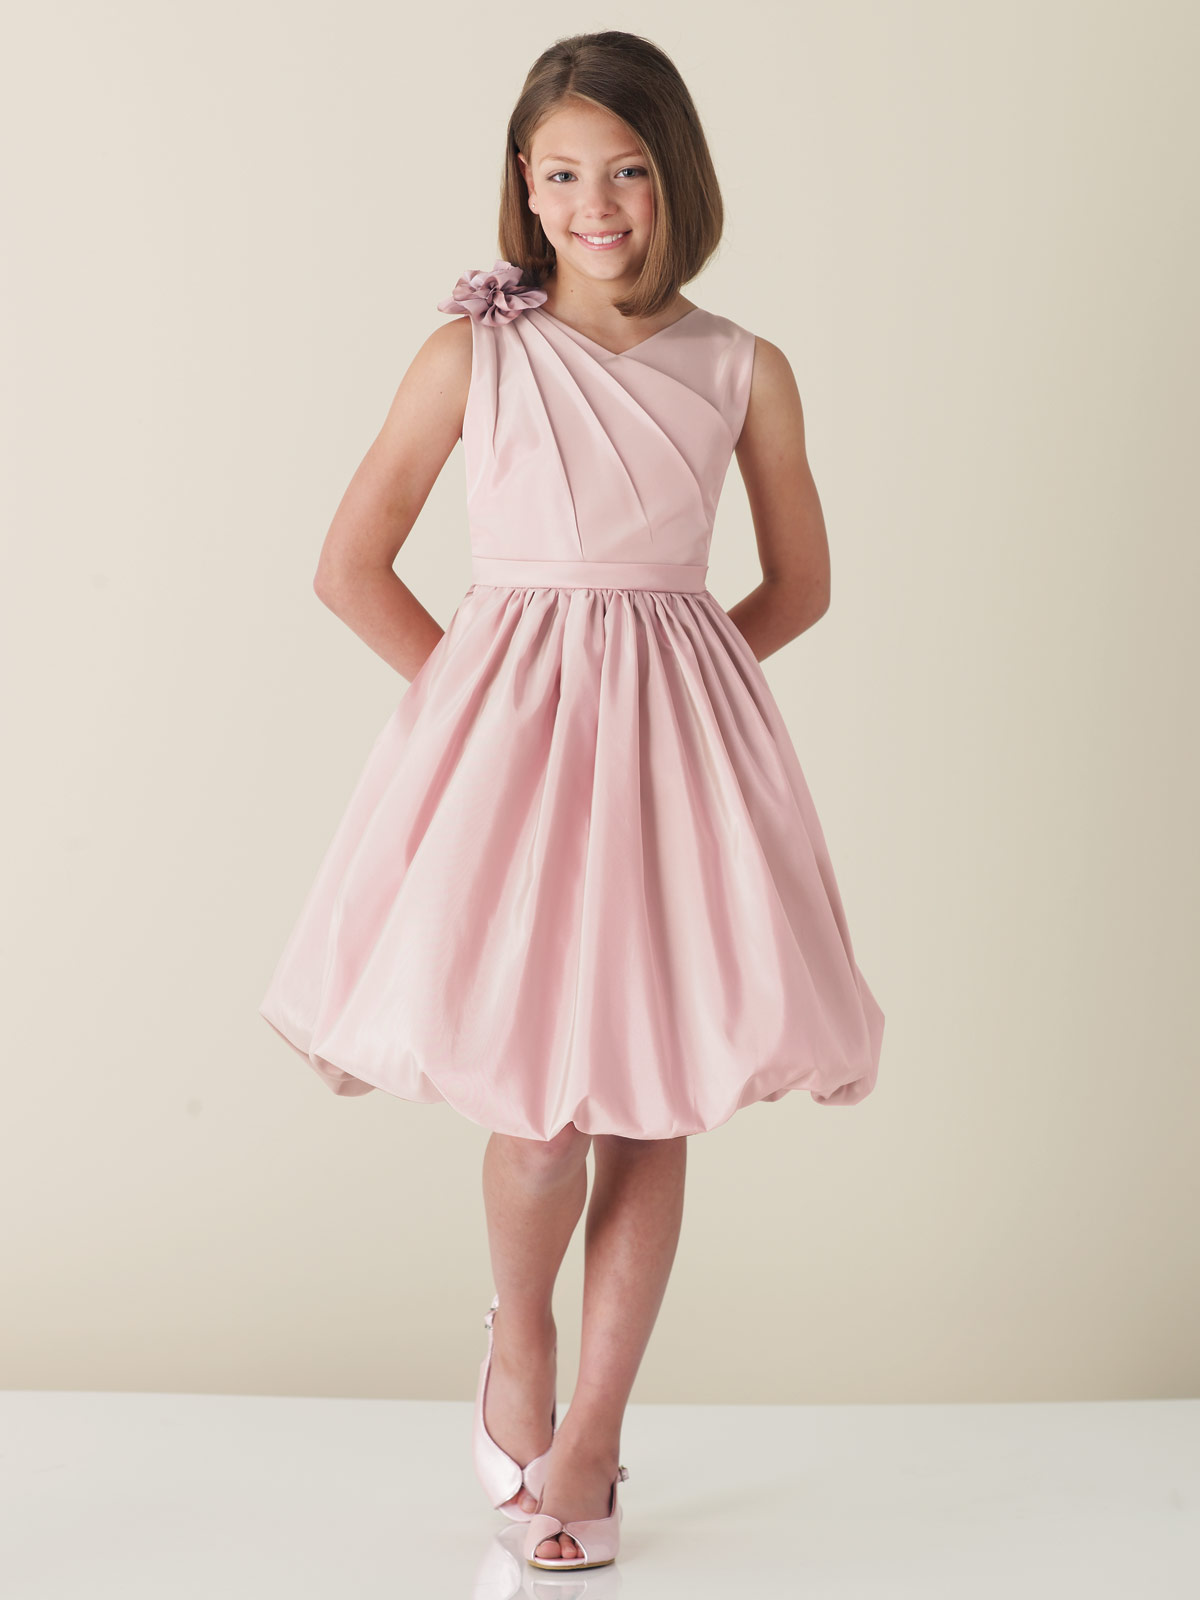 Junior Bridesmaid Dresses - Dressed Up Girl